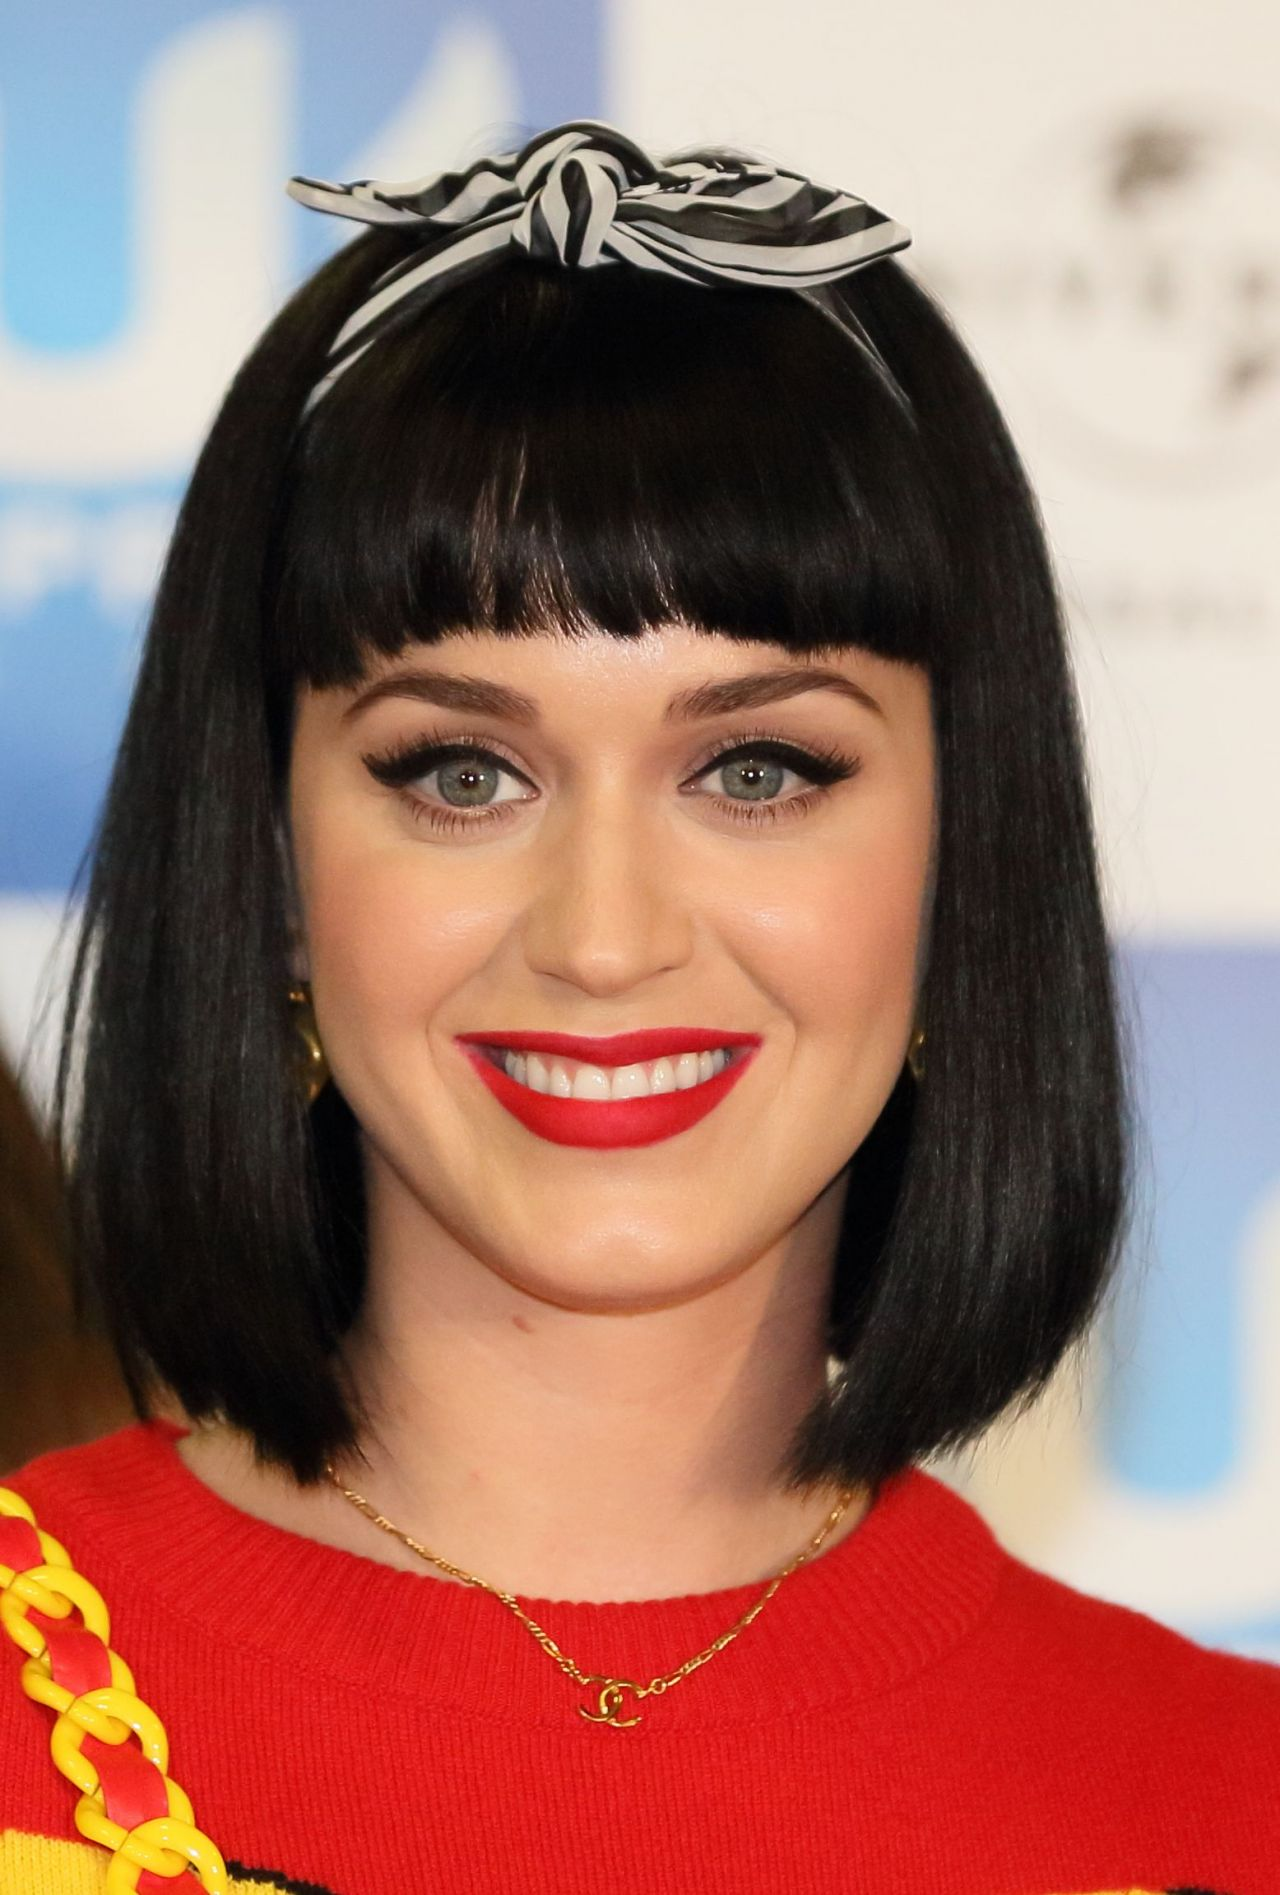 Katy Perry U Express Live Press Conference In Japan